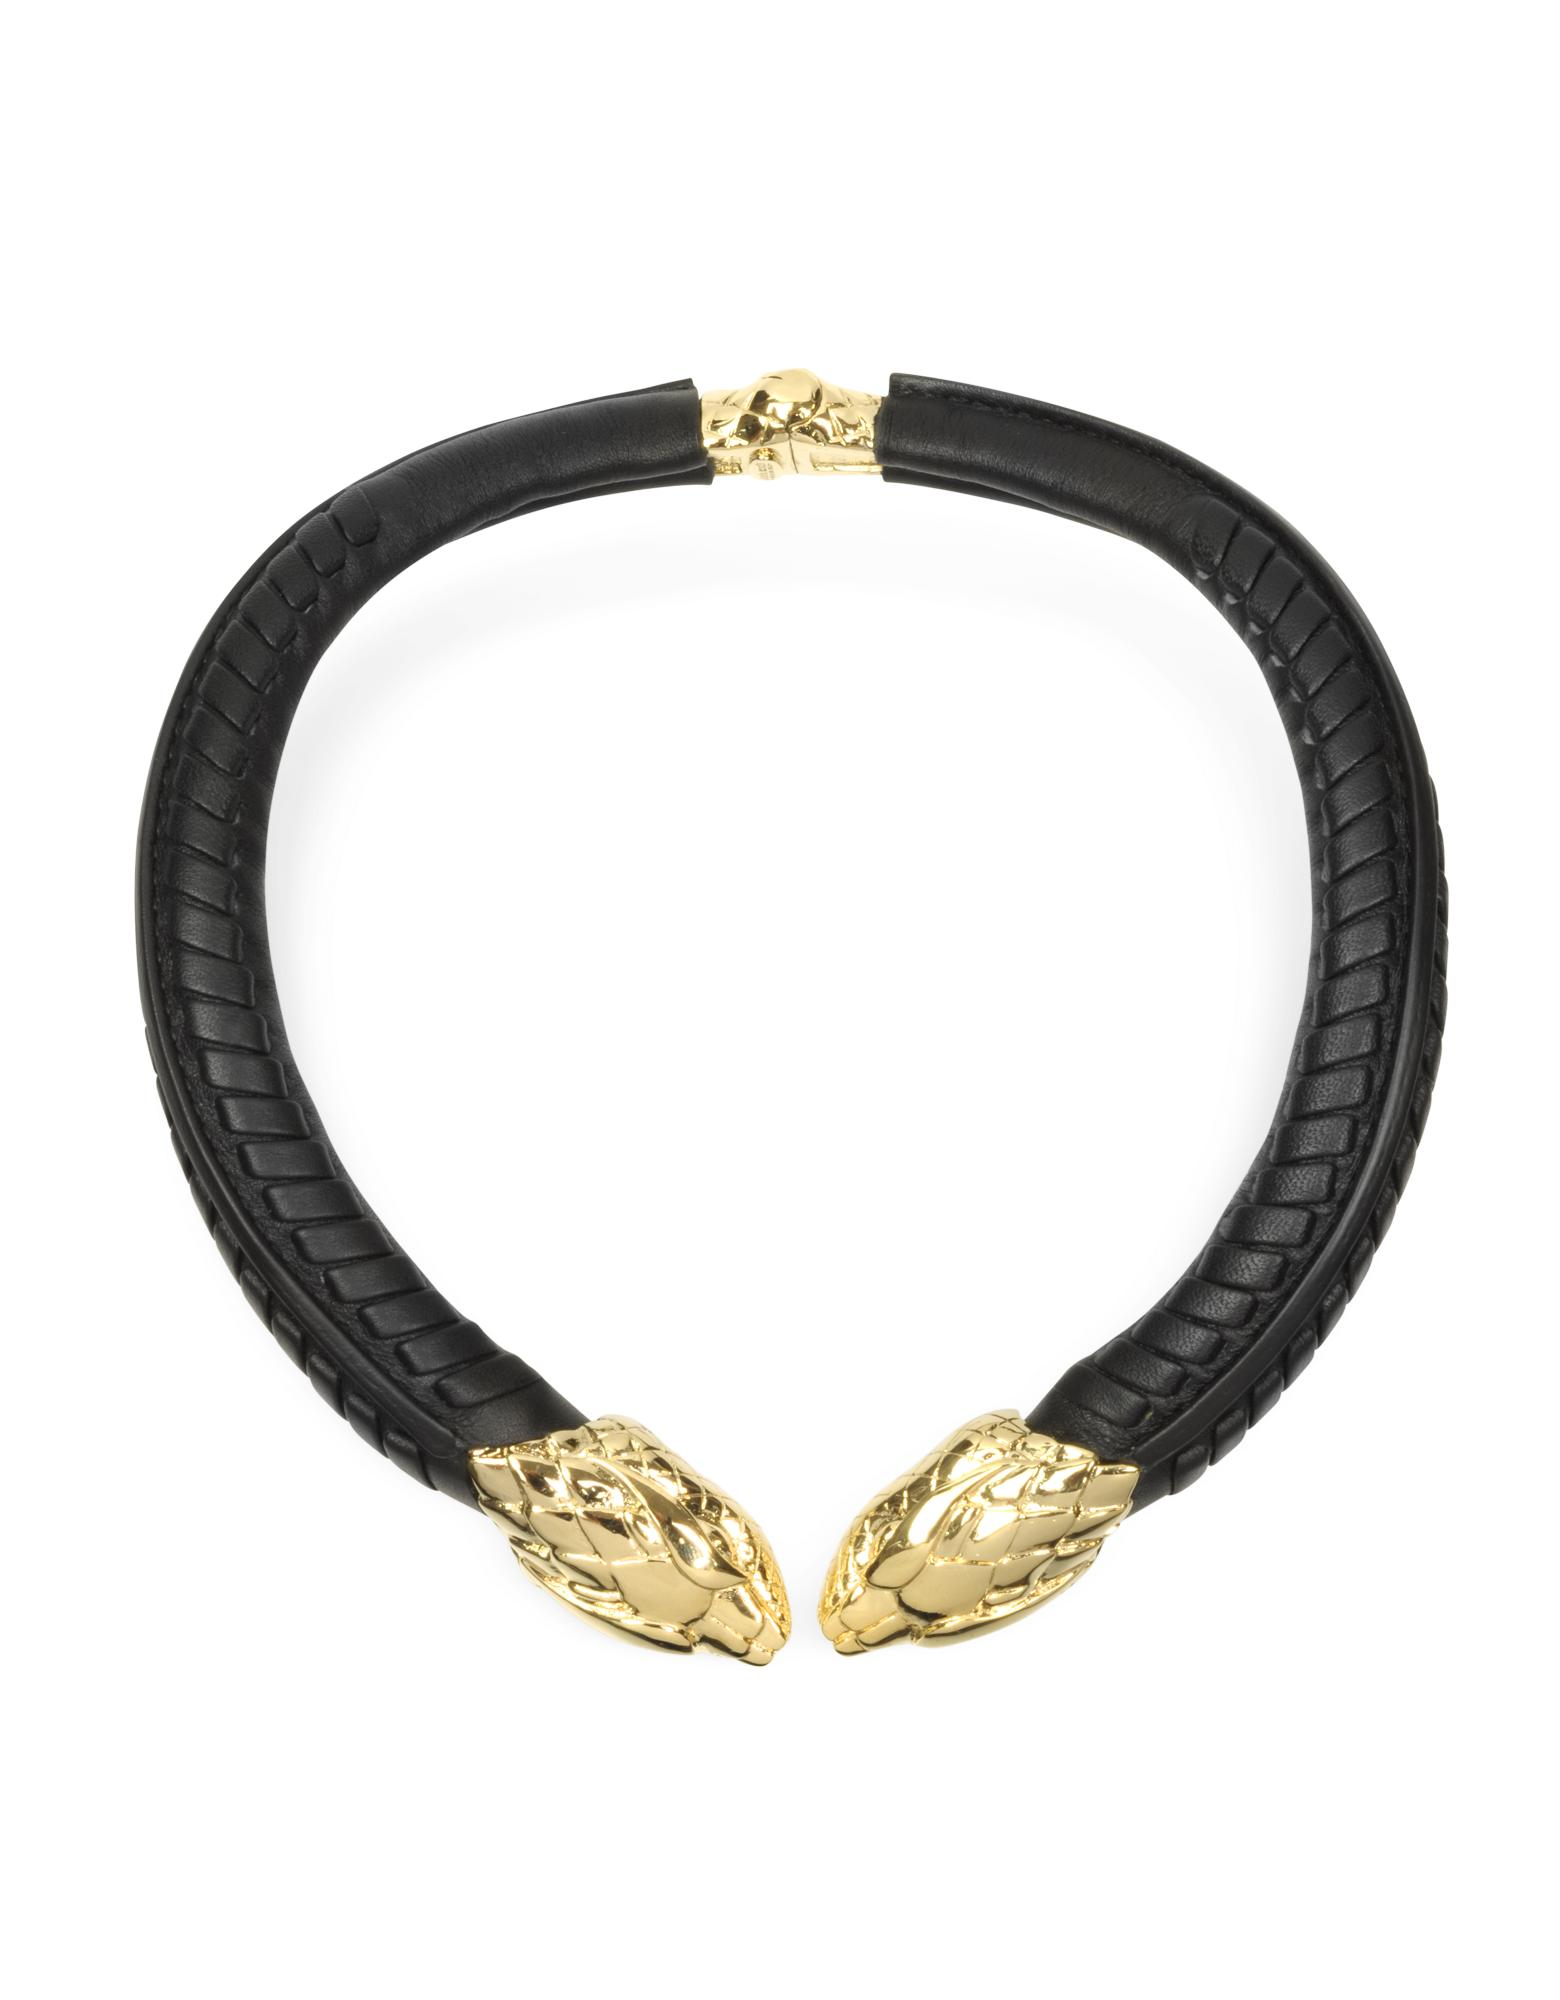 Serpent Black Leather and Gold Tone Metal Necklace - Roberto Cavalli